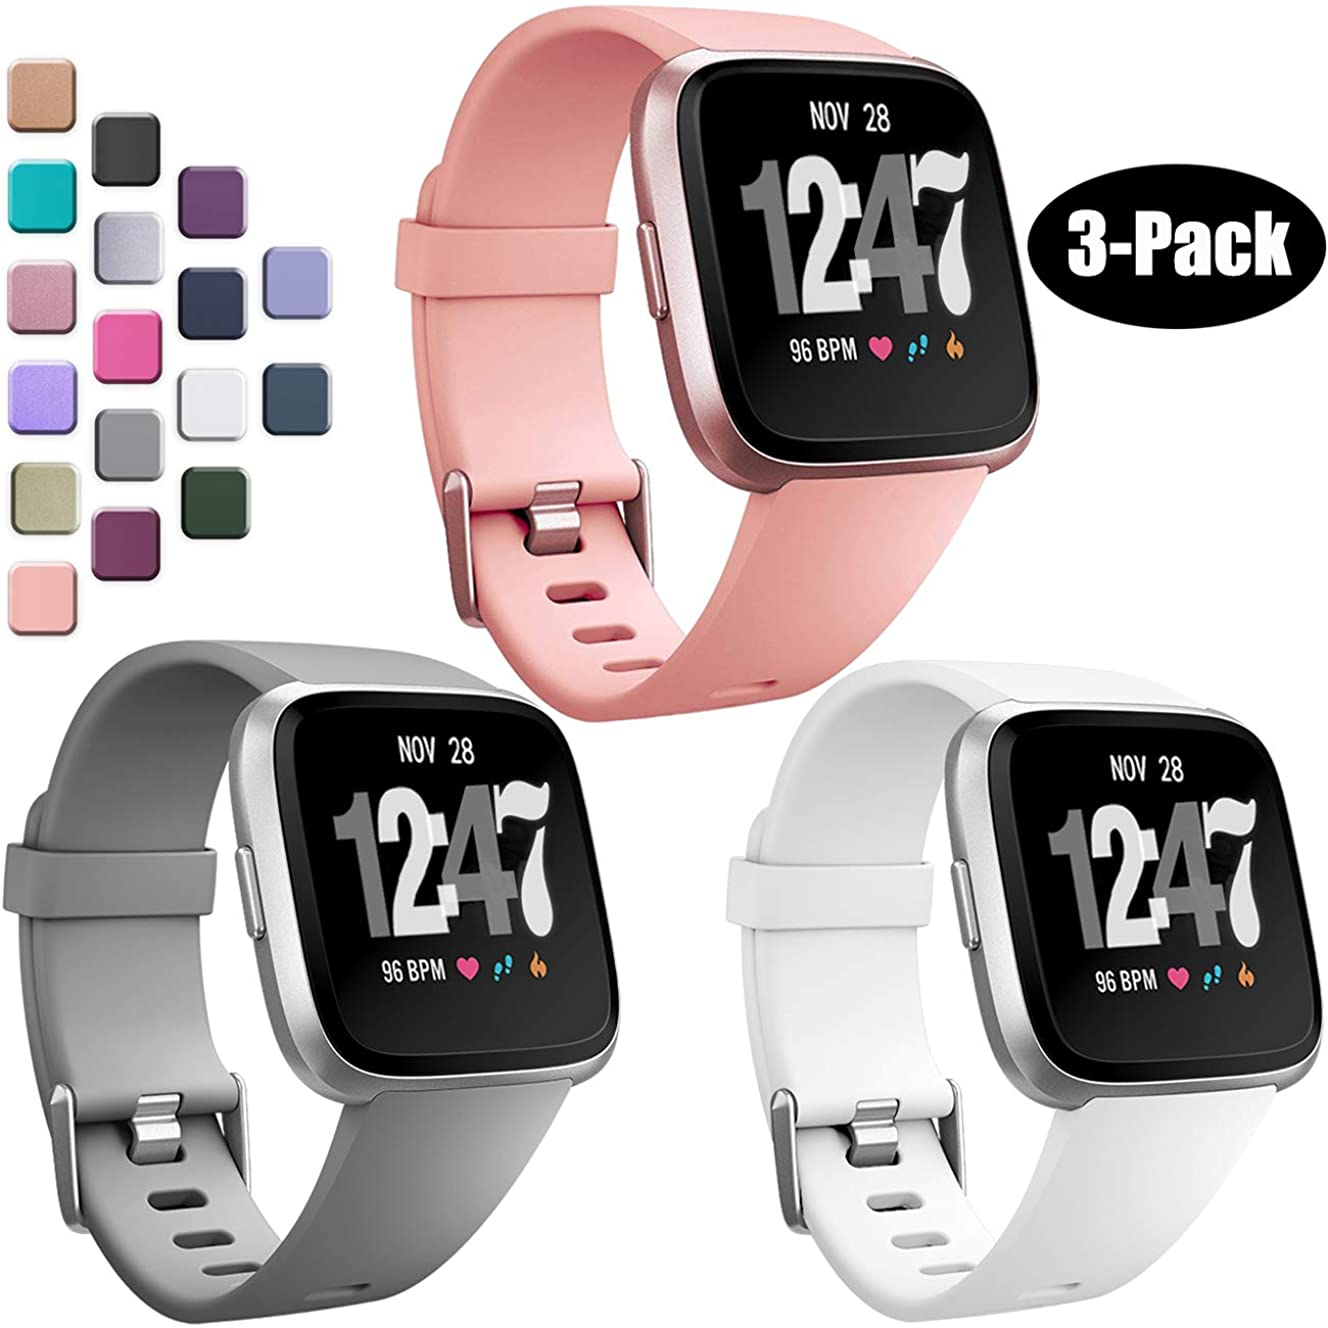 Wepro Bands Compatible with Fitbit Versa SmartWatch and Versa Lite SE Watch, 3-Pack, Small, Large, Buckle